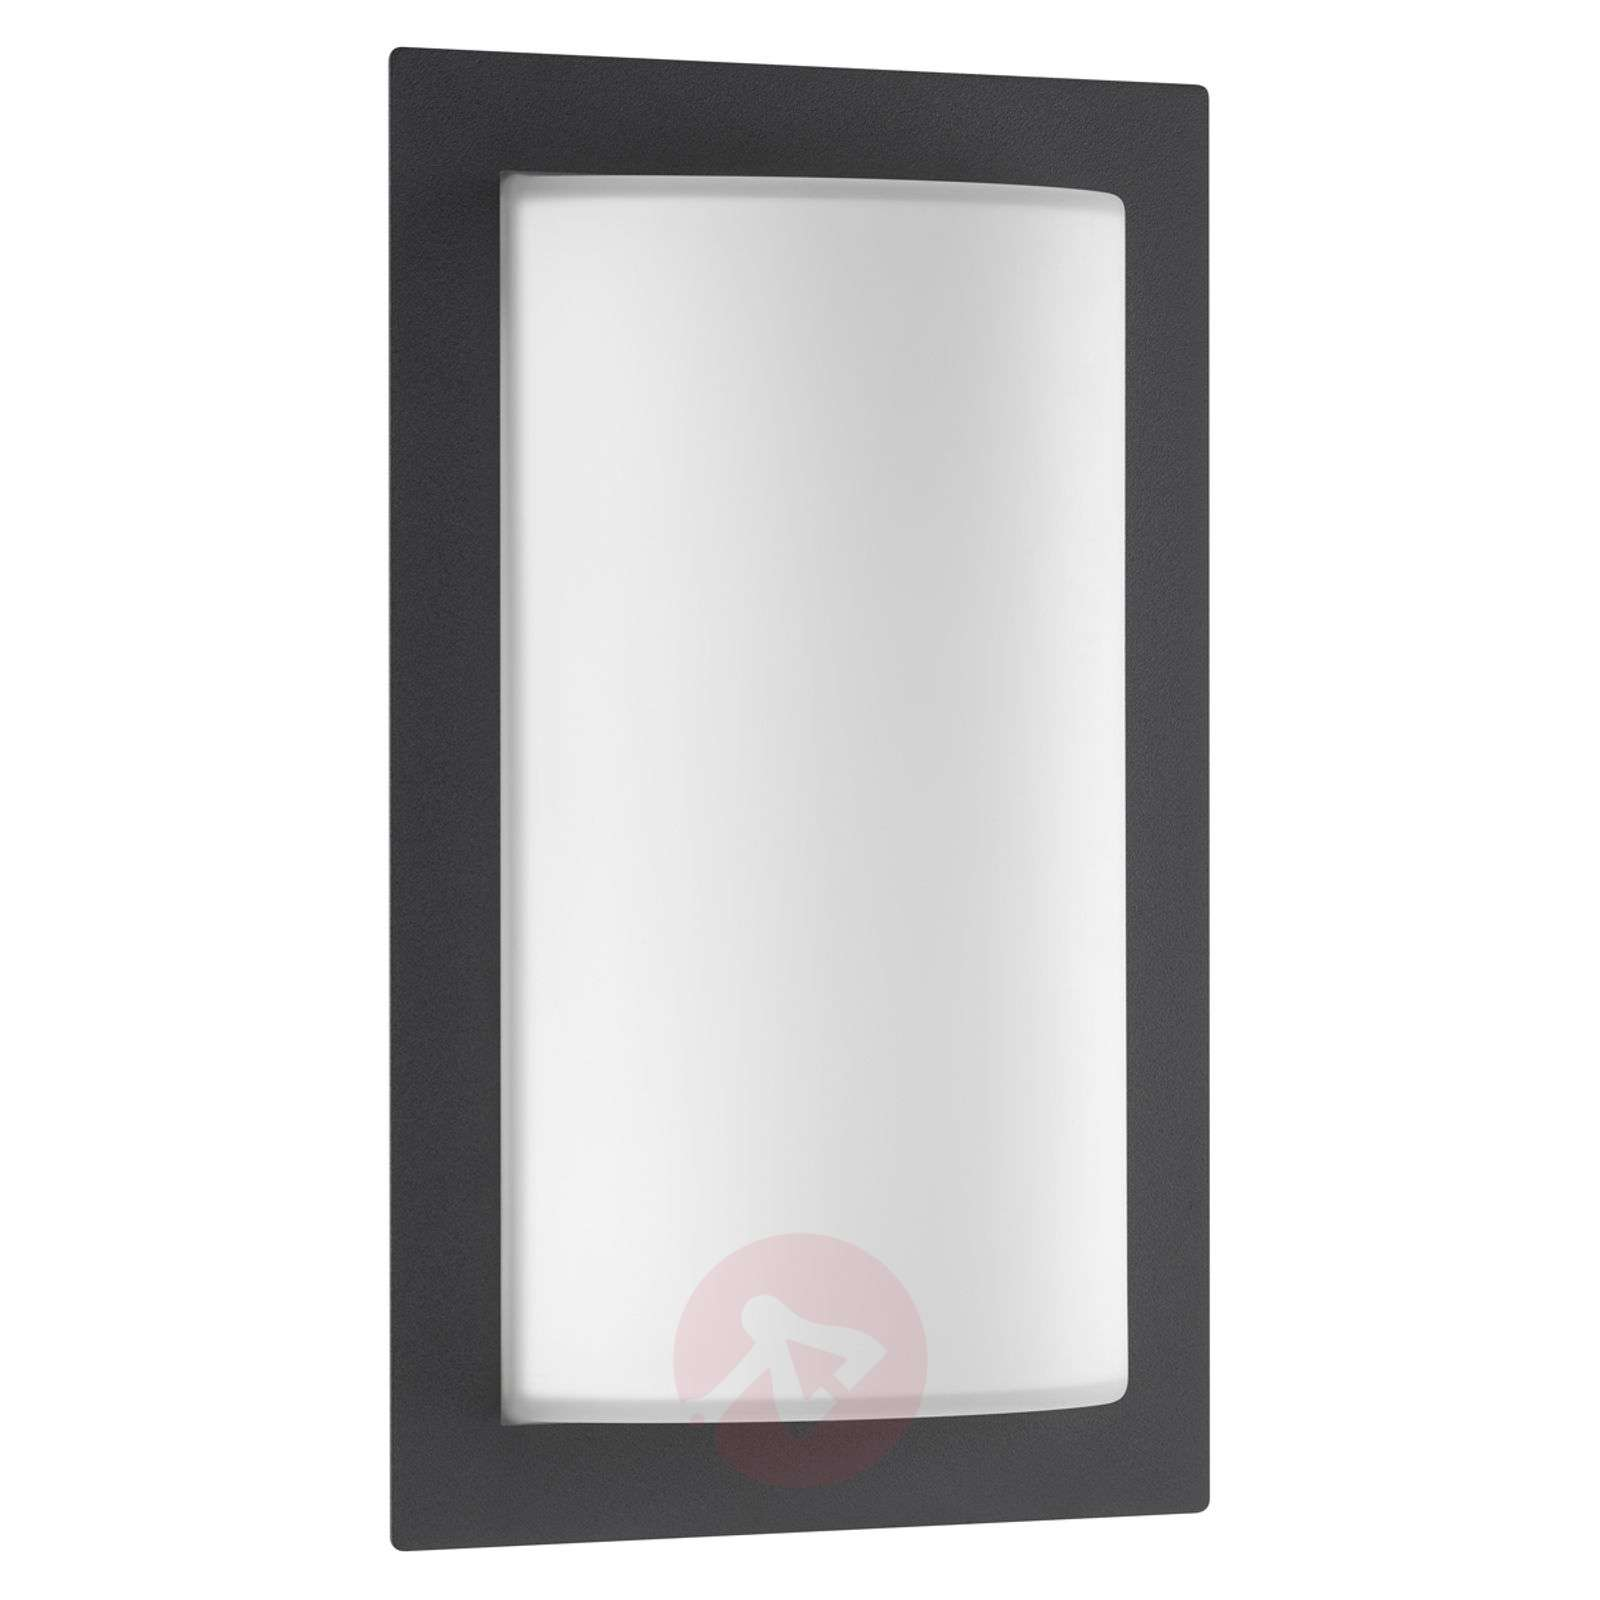 Luis LED outdoor wall light with motion detector-6068085-01